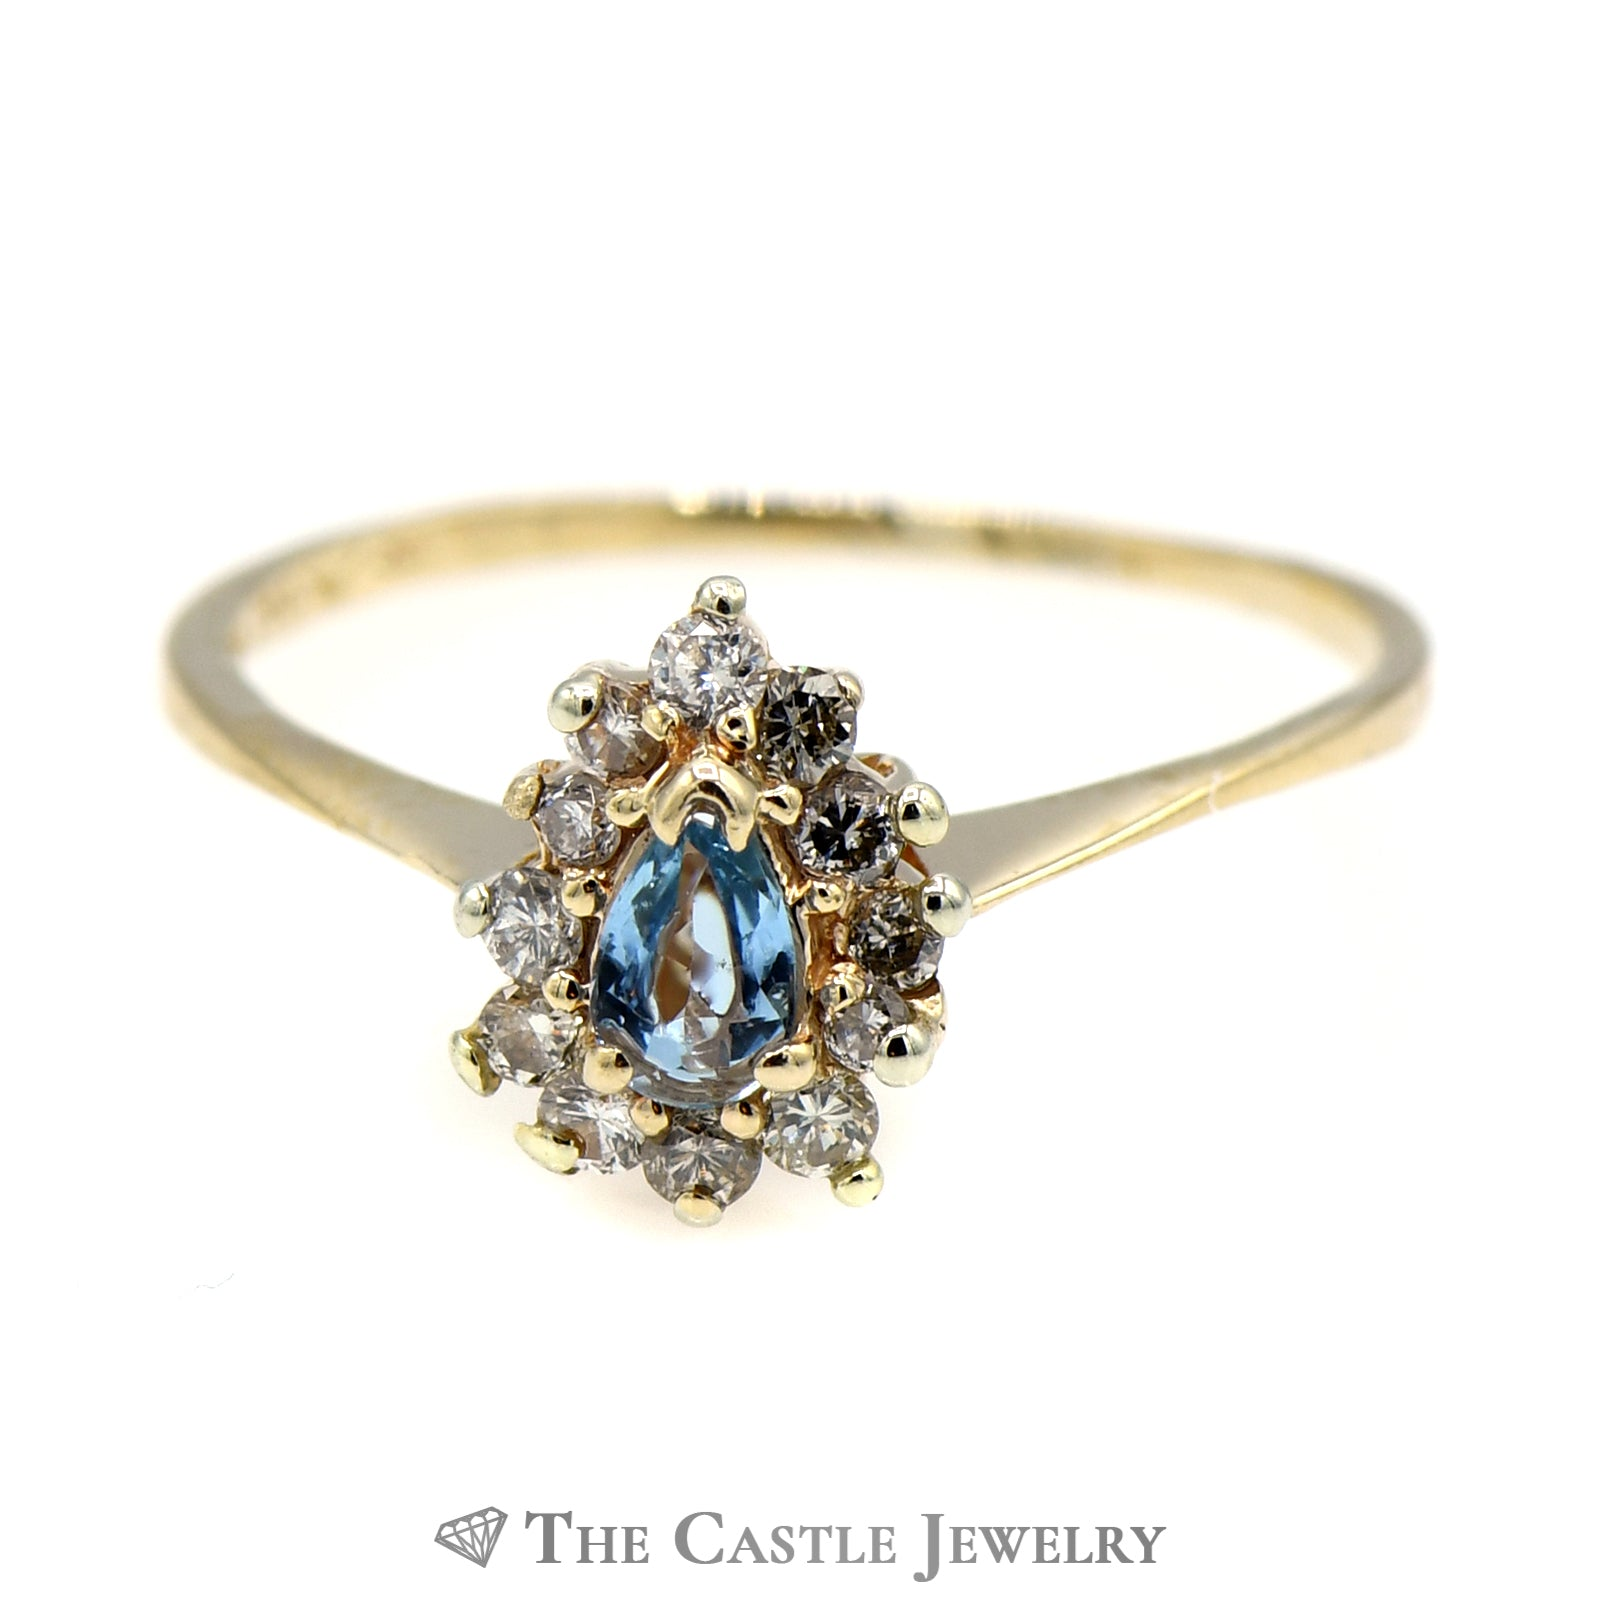 Petite Pear Shaped Topaz Ring with Diamond Halo